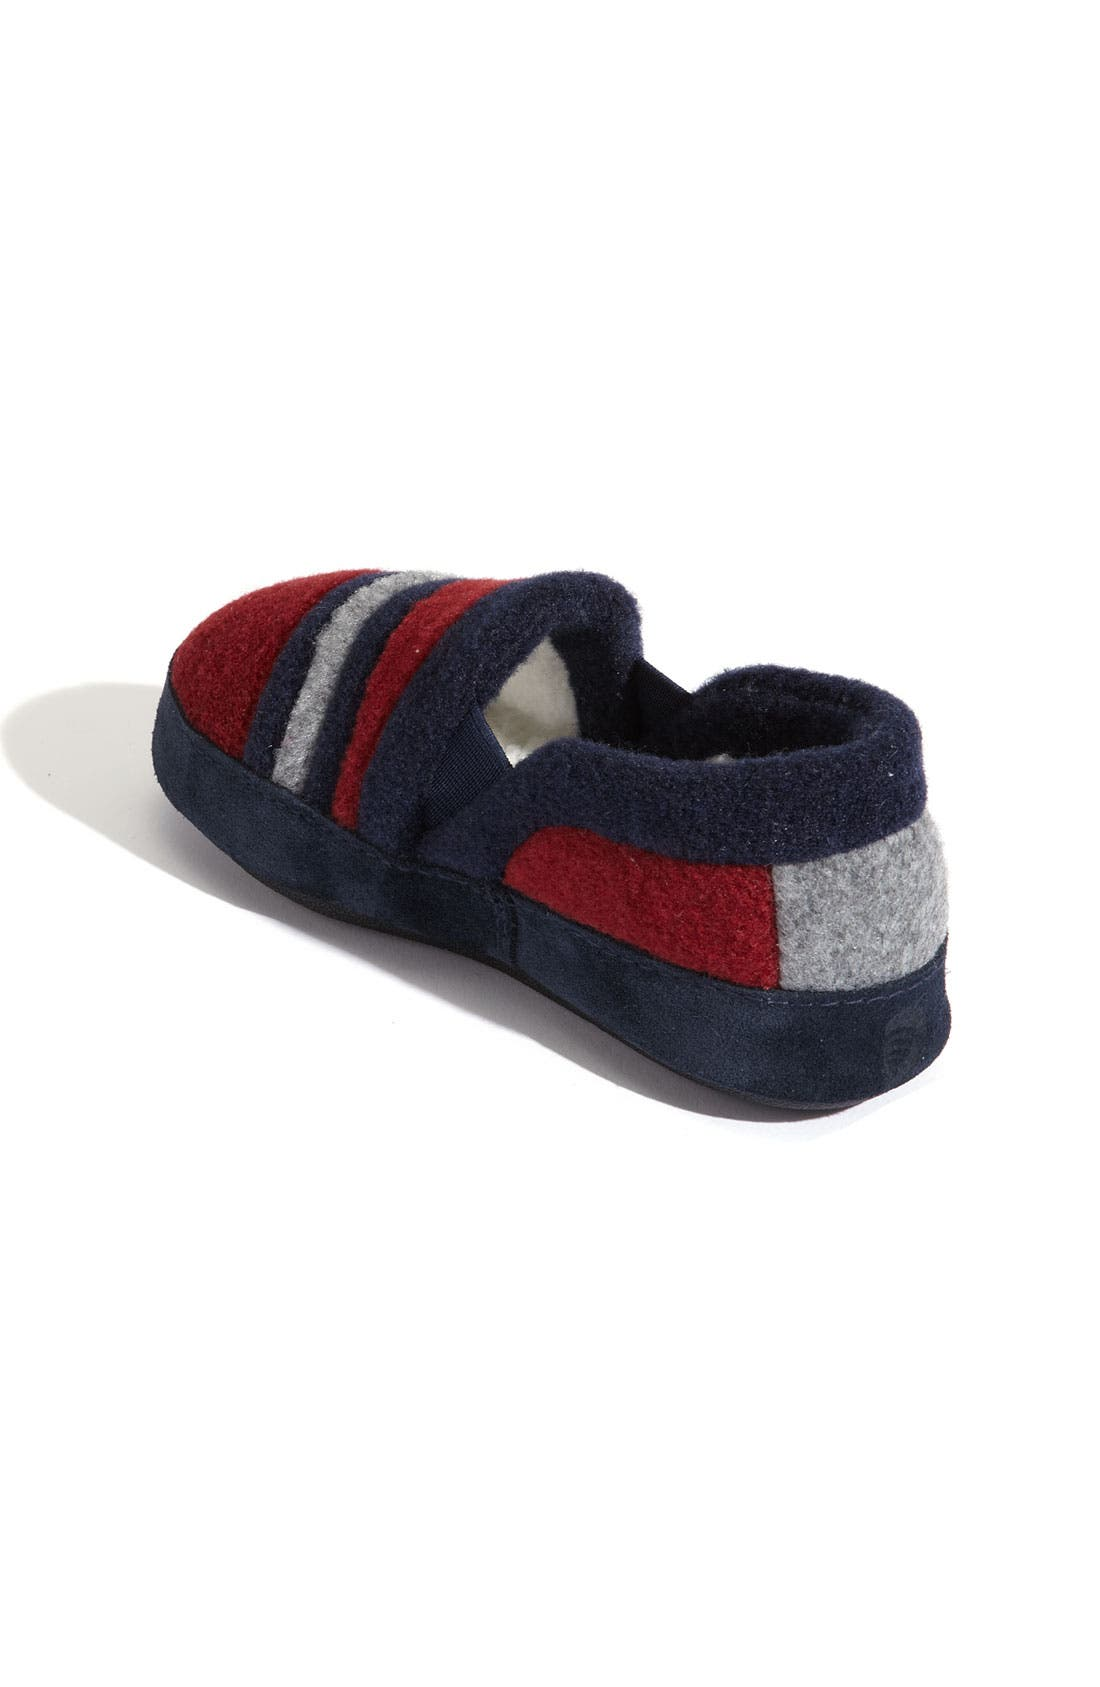 Alternate Image 2  - Acorn 'Colby Moc' Slipper (Toddler, Little Kid & Big Kid)